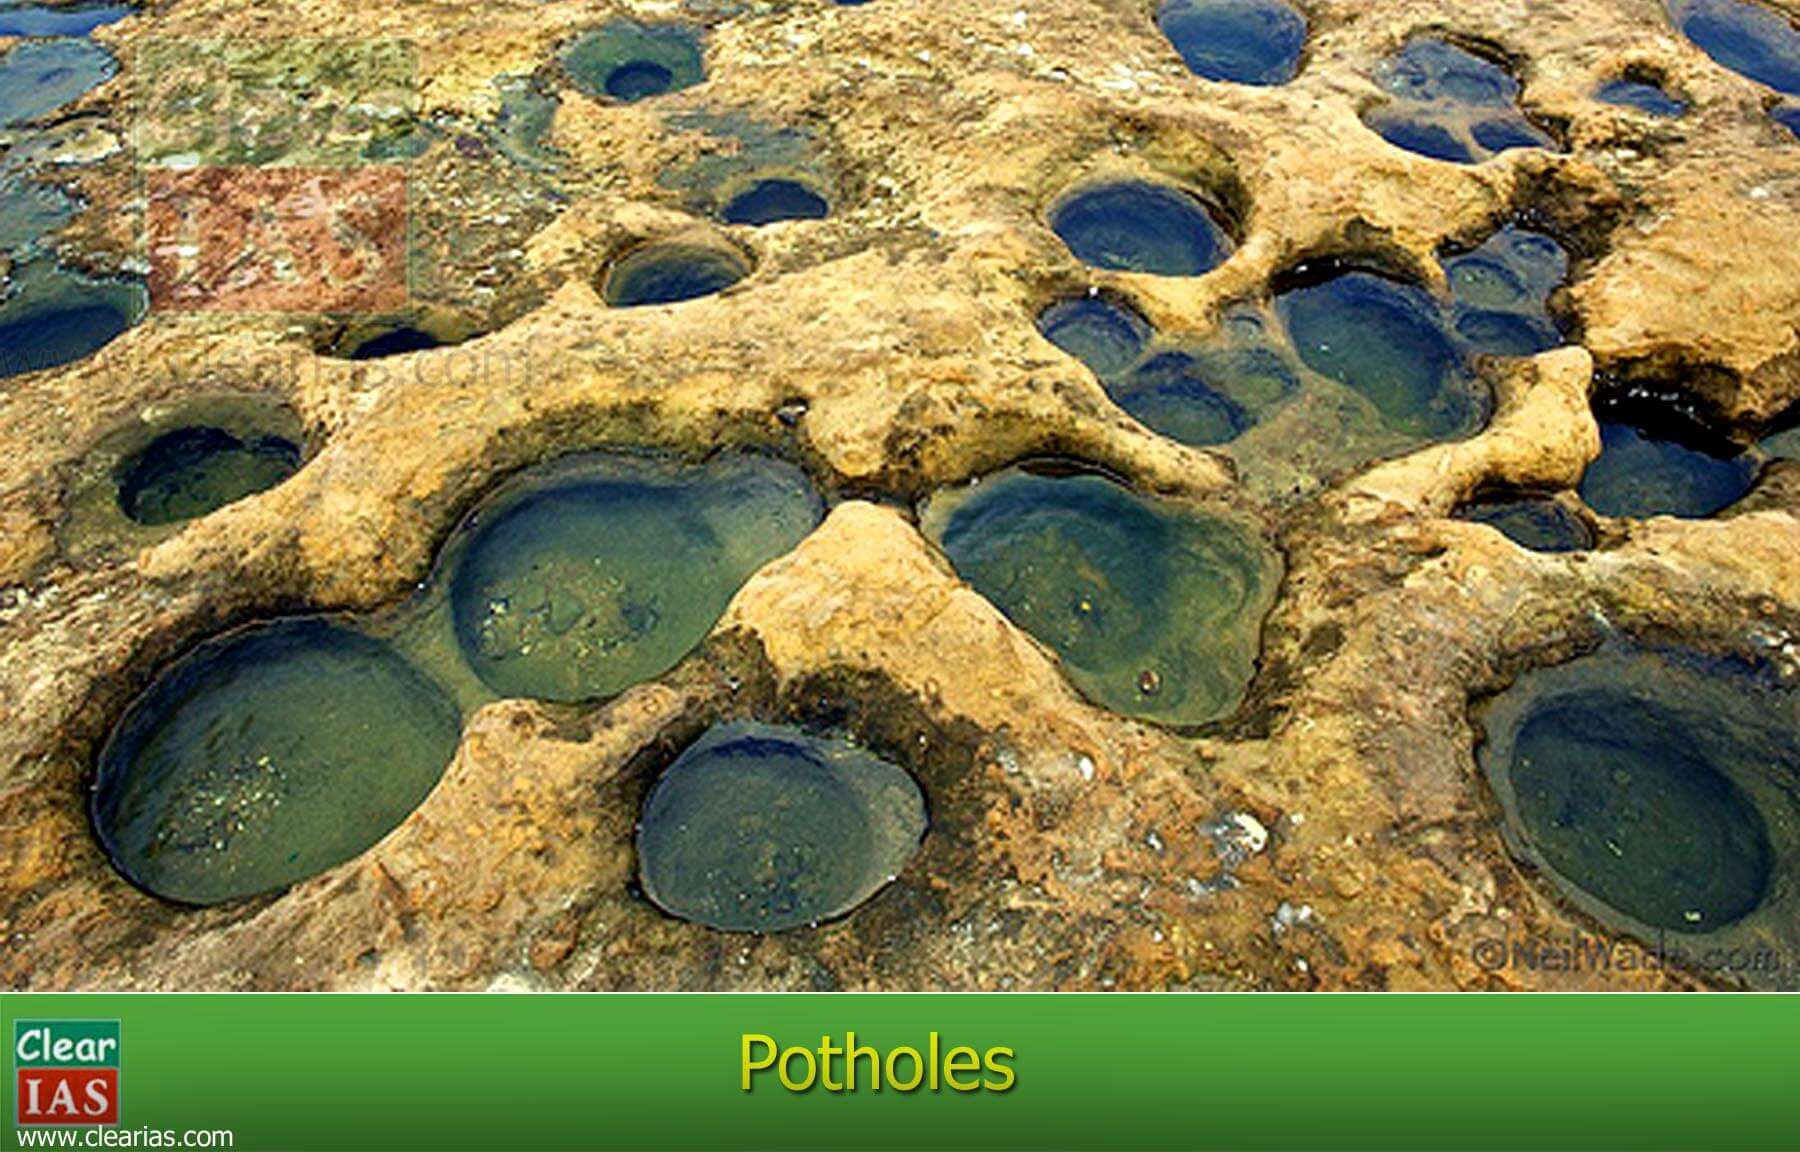 Potholes - erosional landform due to running water